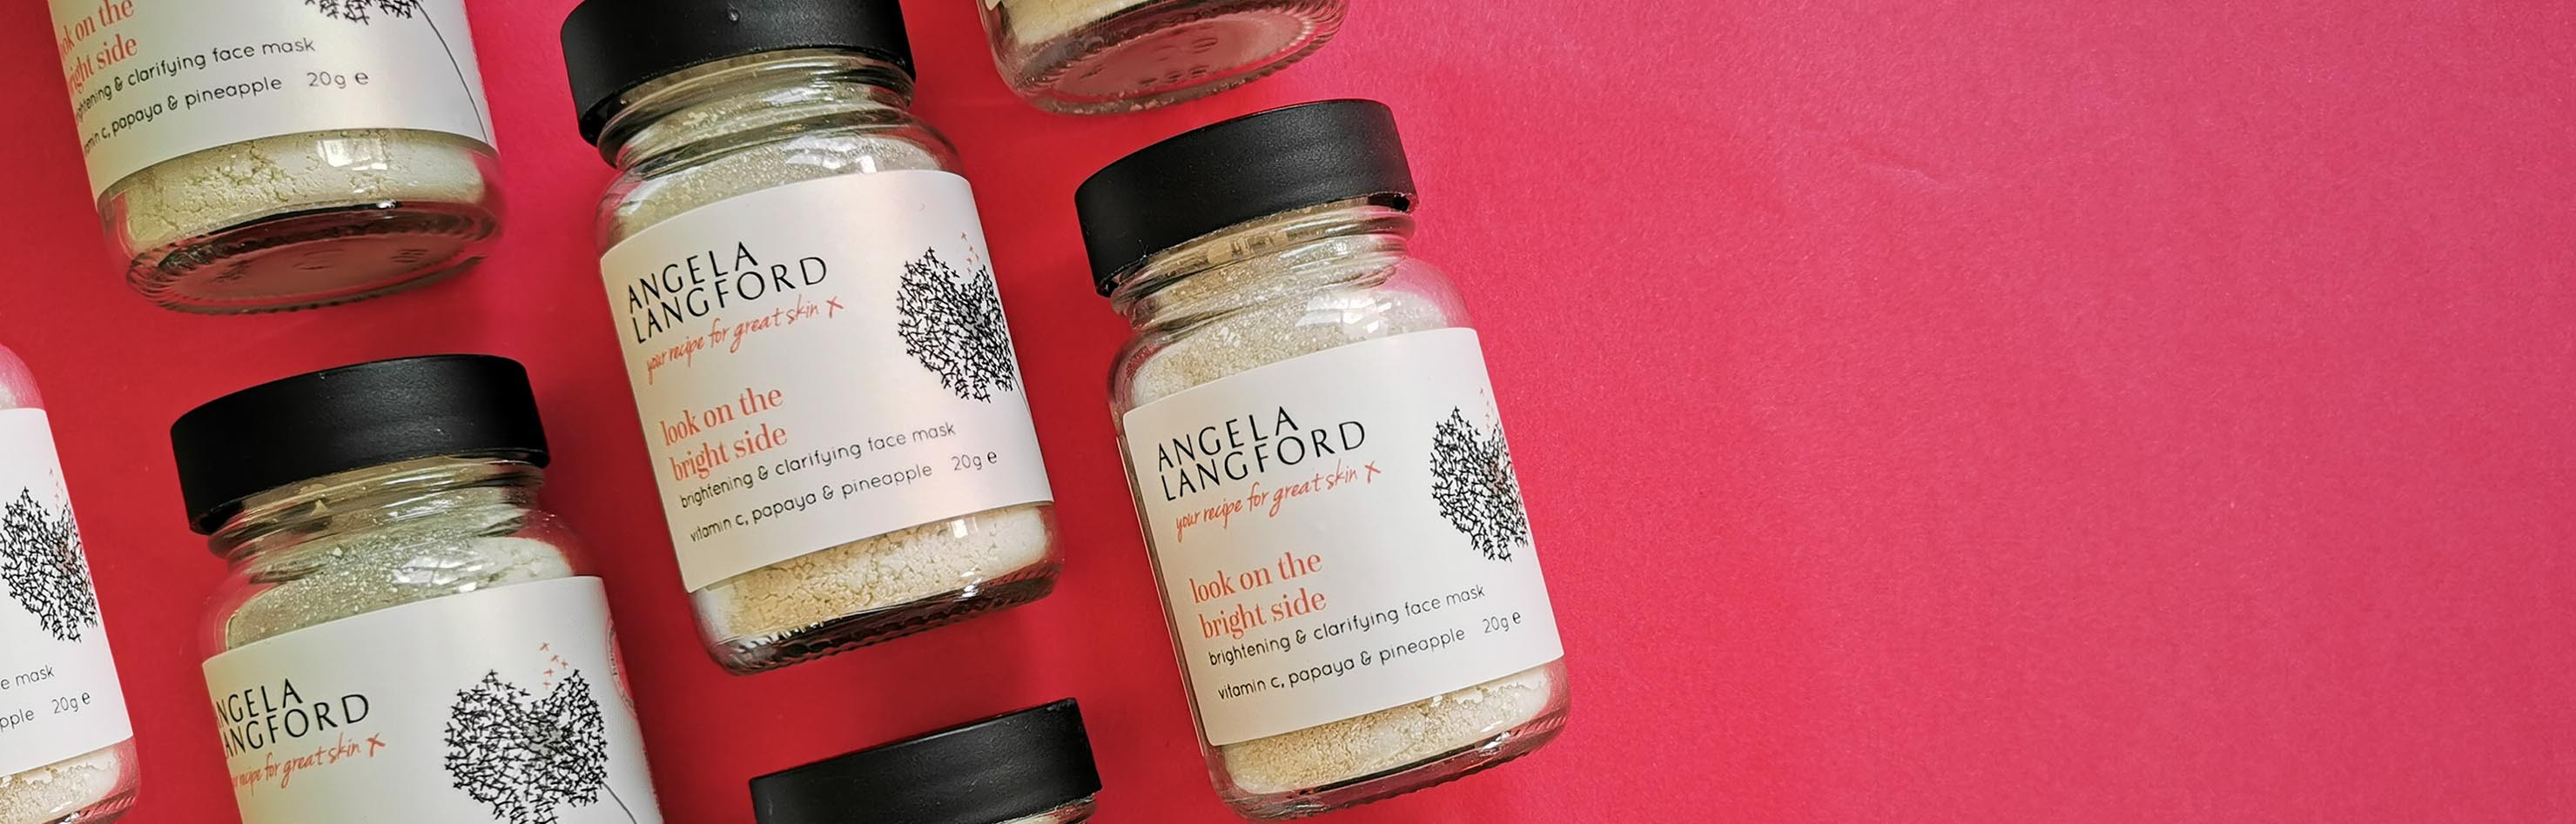 look on the bright side face mask by Angela Langford Skincare